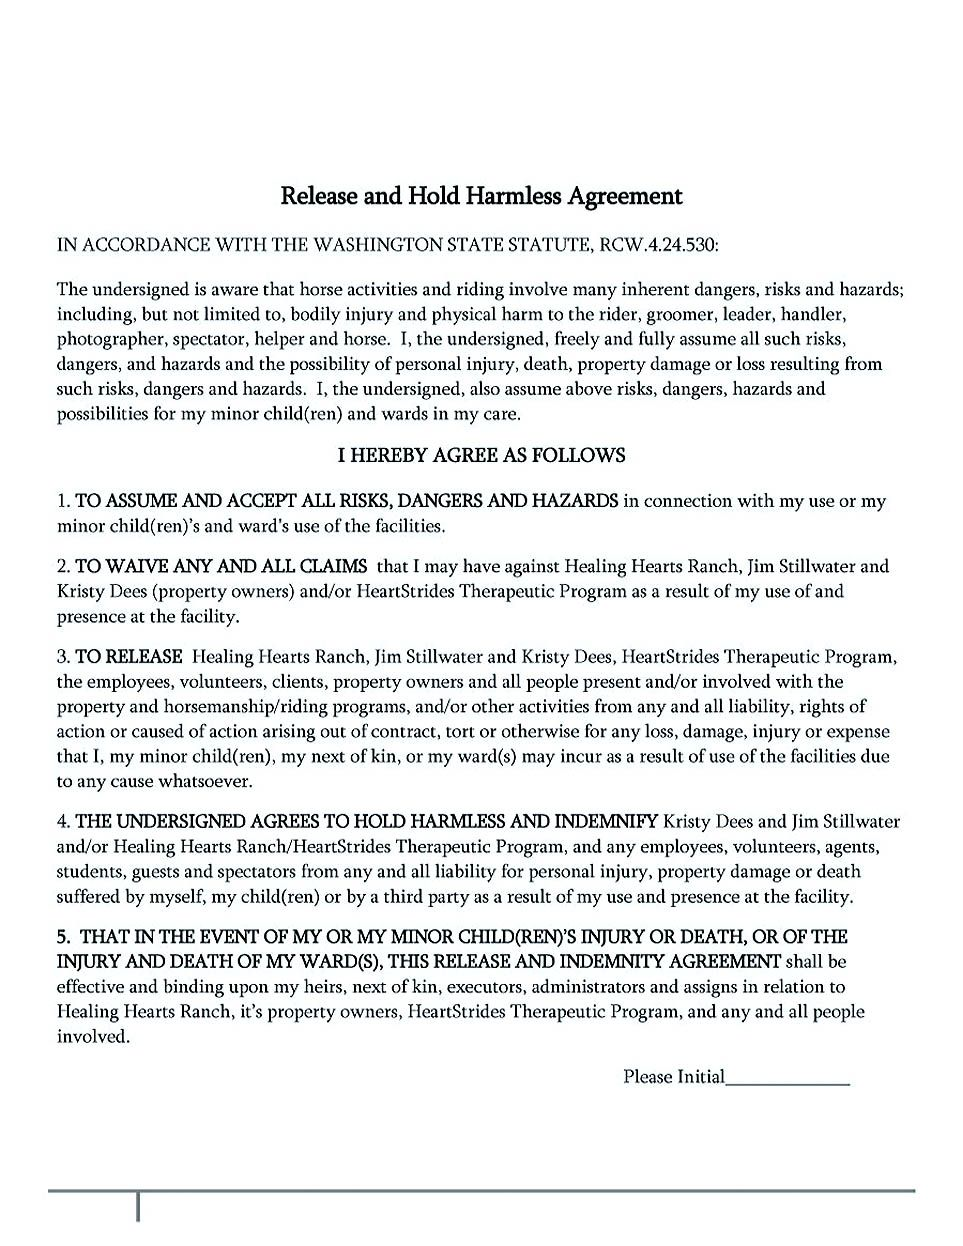 Hold harmless agreement template free making hold harmless hold harmless agreement template free making hold harmless agreement template for different purposes hold solutioingenieria Choice Image